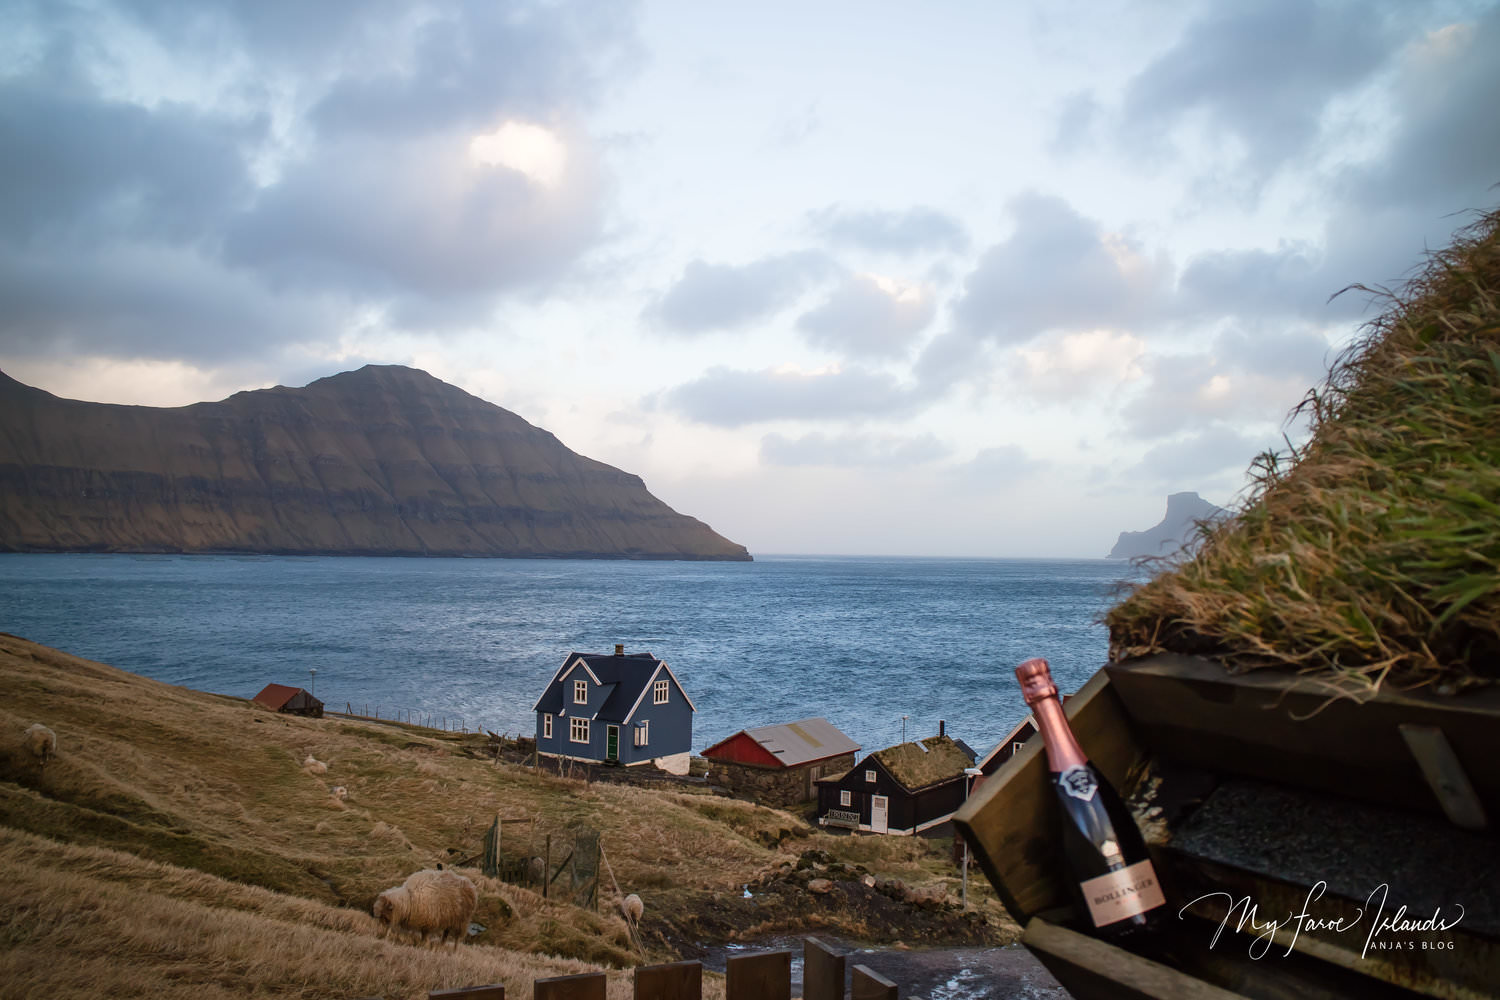 Happy+New+Year+©+My+Faroe+Islands,+Anja+Mazuhn+.jpg